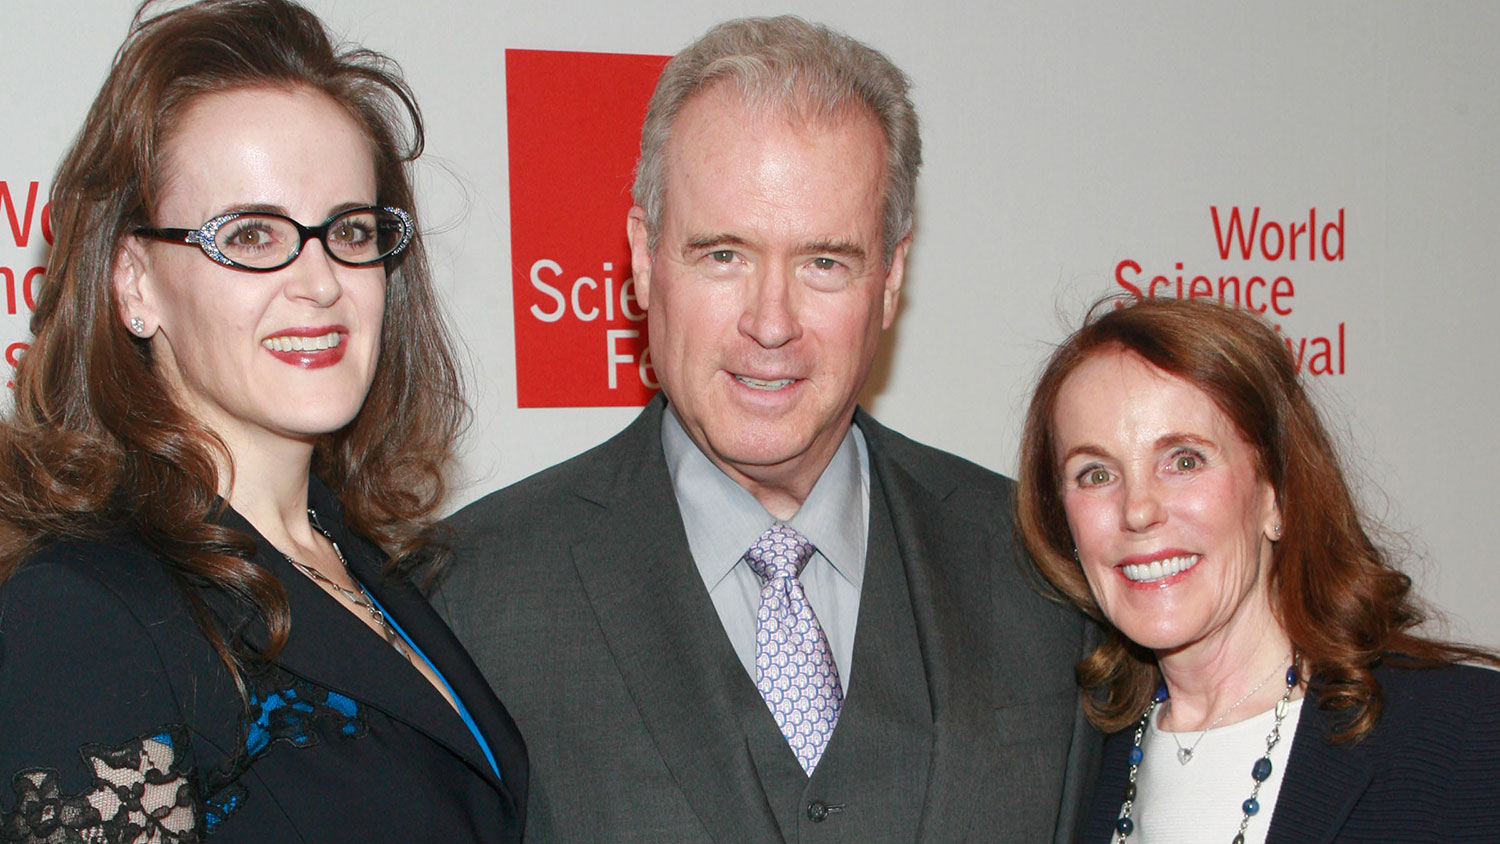 Rebekah Mercer, Daughter of Major Donor, Named to Trump Role - Bloomberg